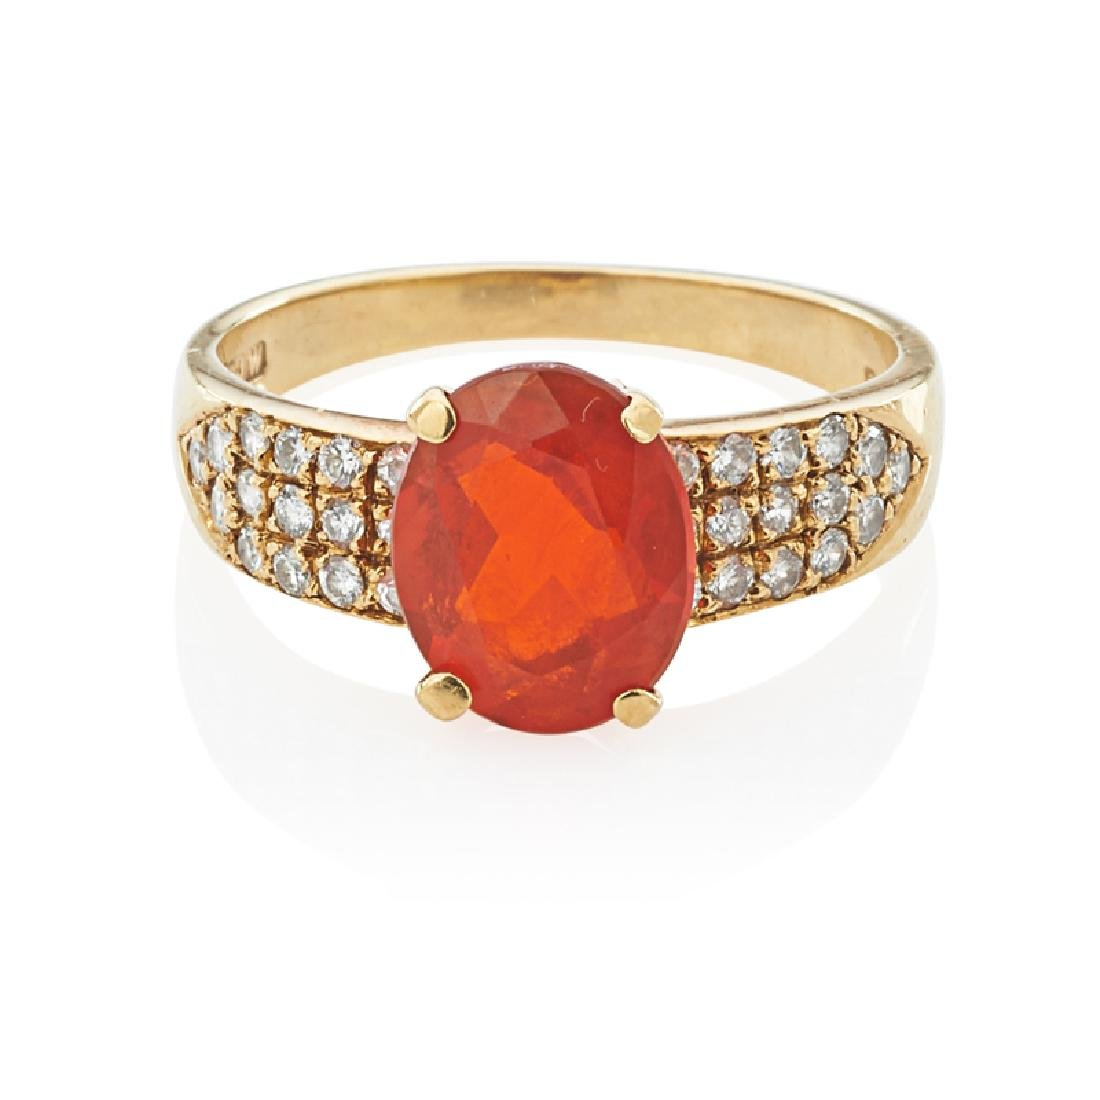 MEXICAN FIRE OPAL, DIAMOND & YELLOW GOLD RING